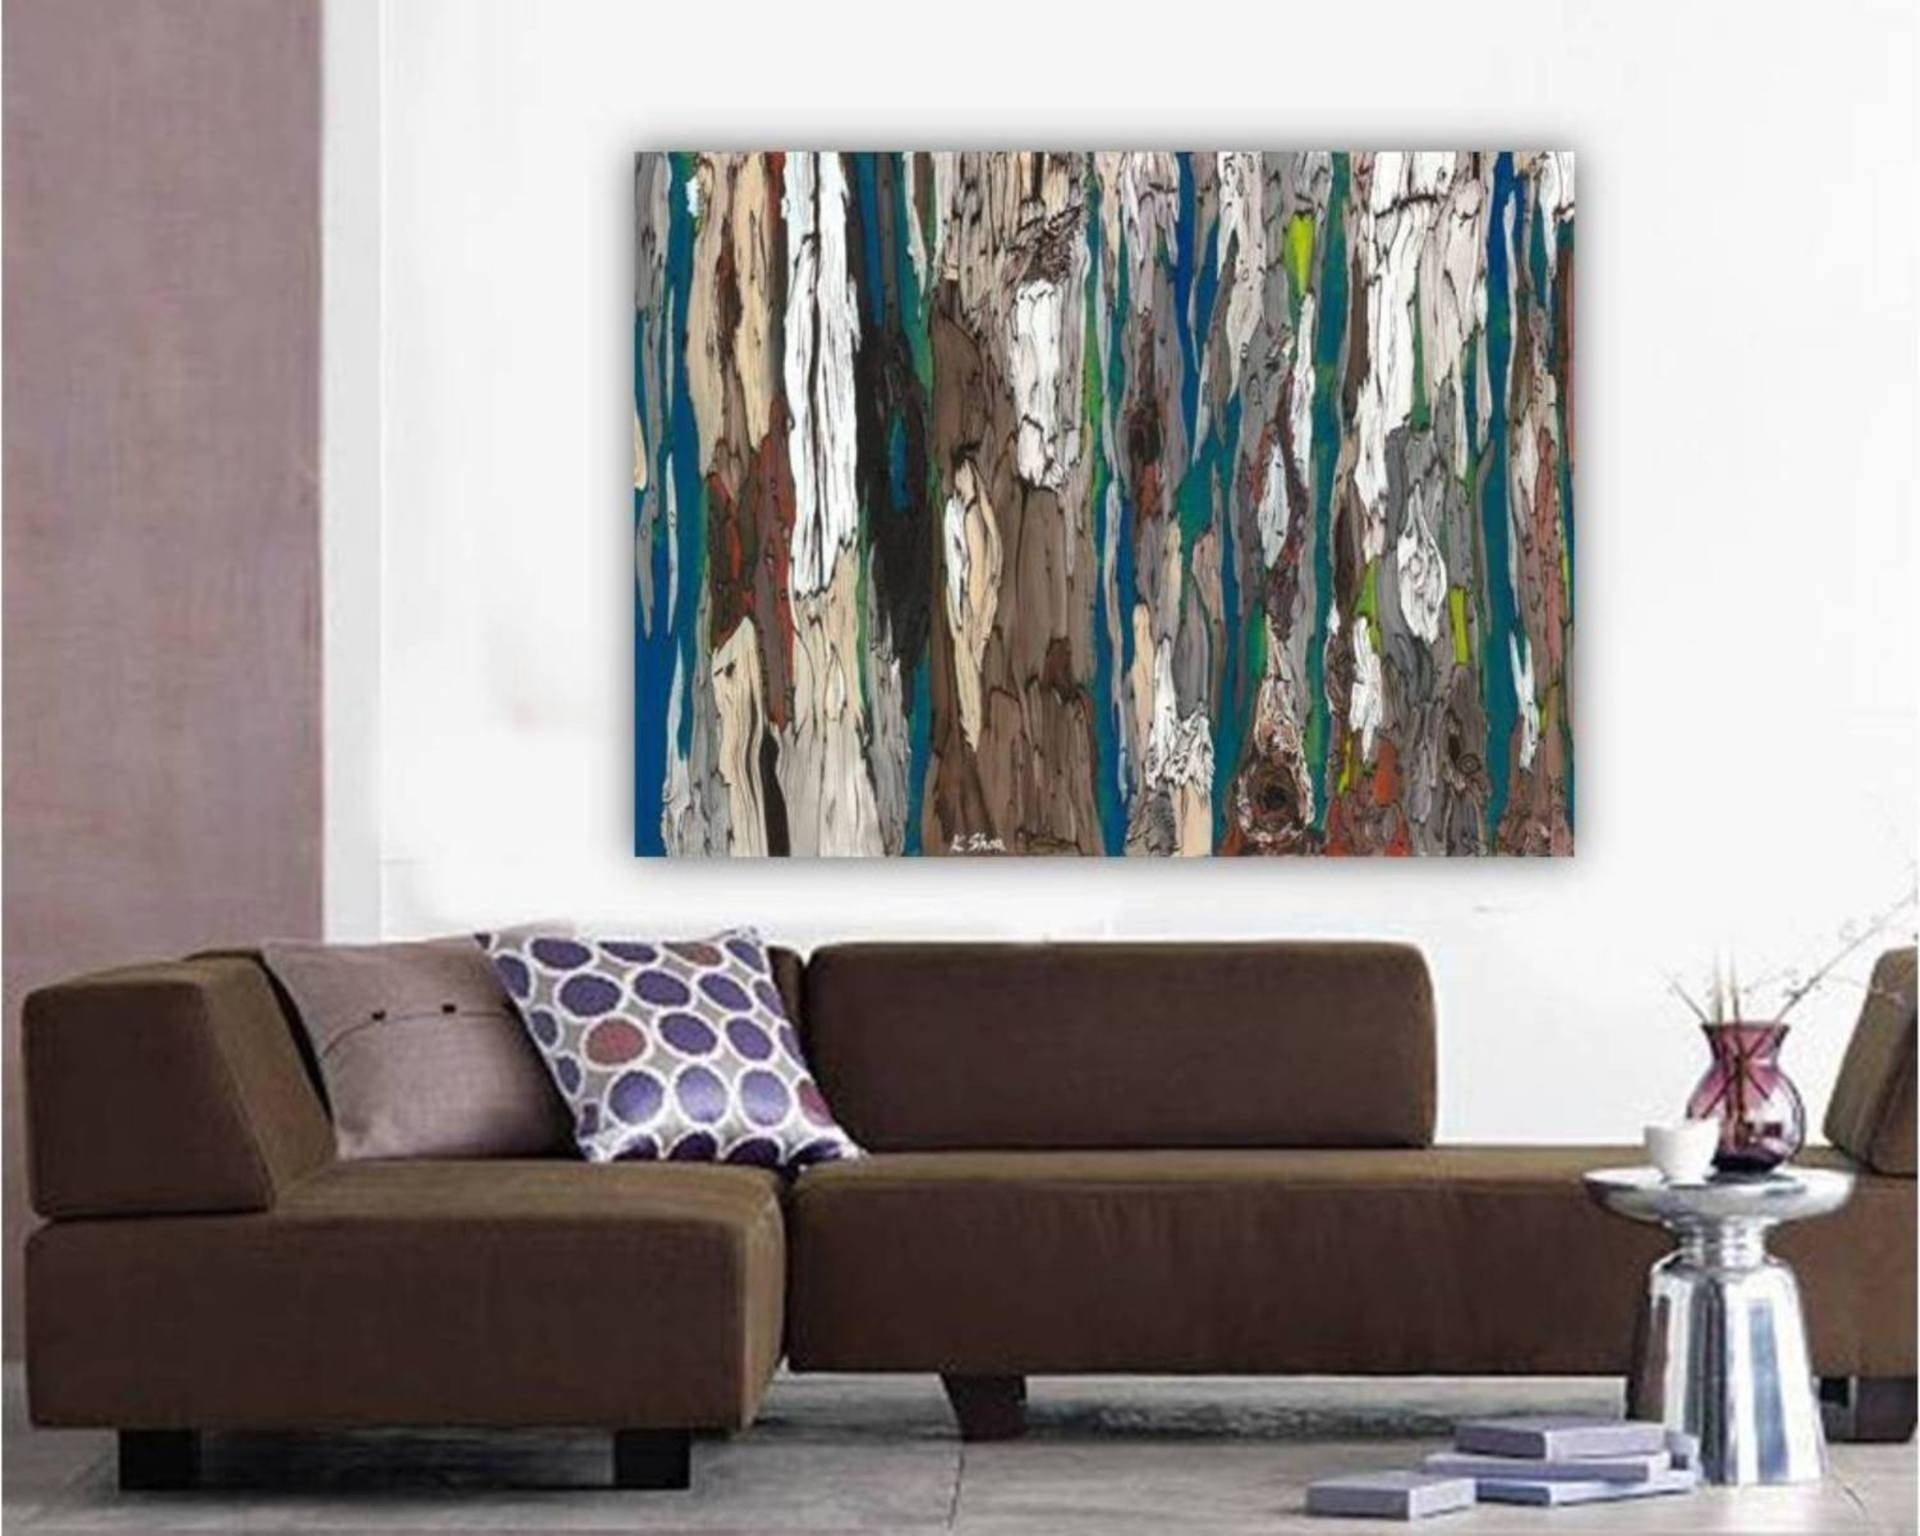 Chic Abstract Wall Art Metal Abstract Wall Art Canvas Abstract Inside Most Up To Date Oversized Abstract Wall Art (View 10 of 20)